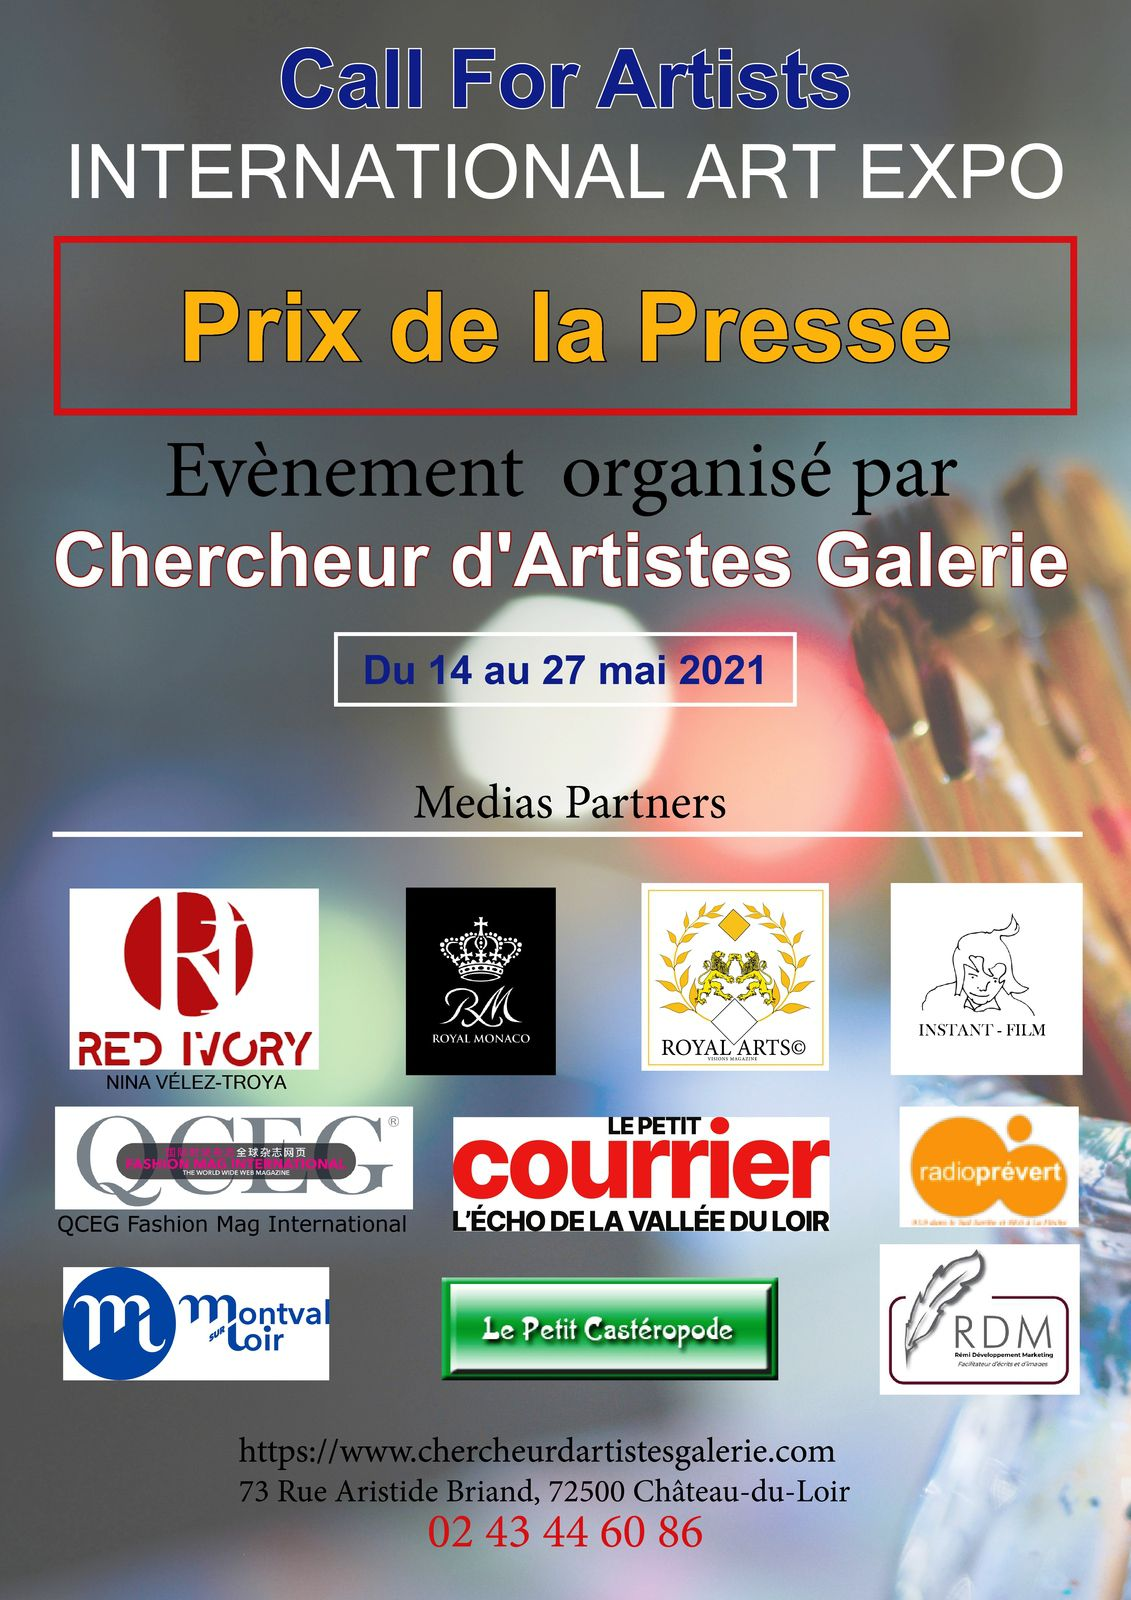 International Art expo - Prix de la presse